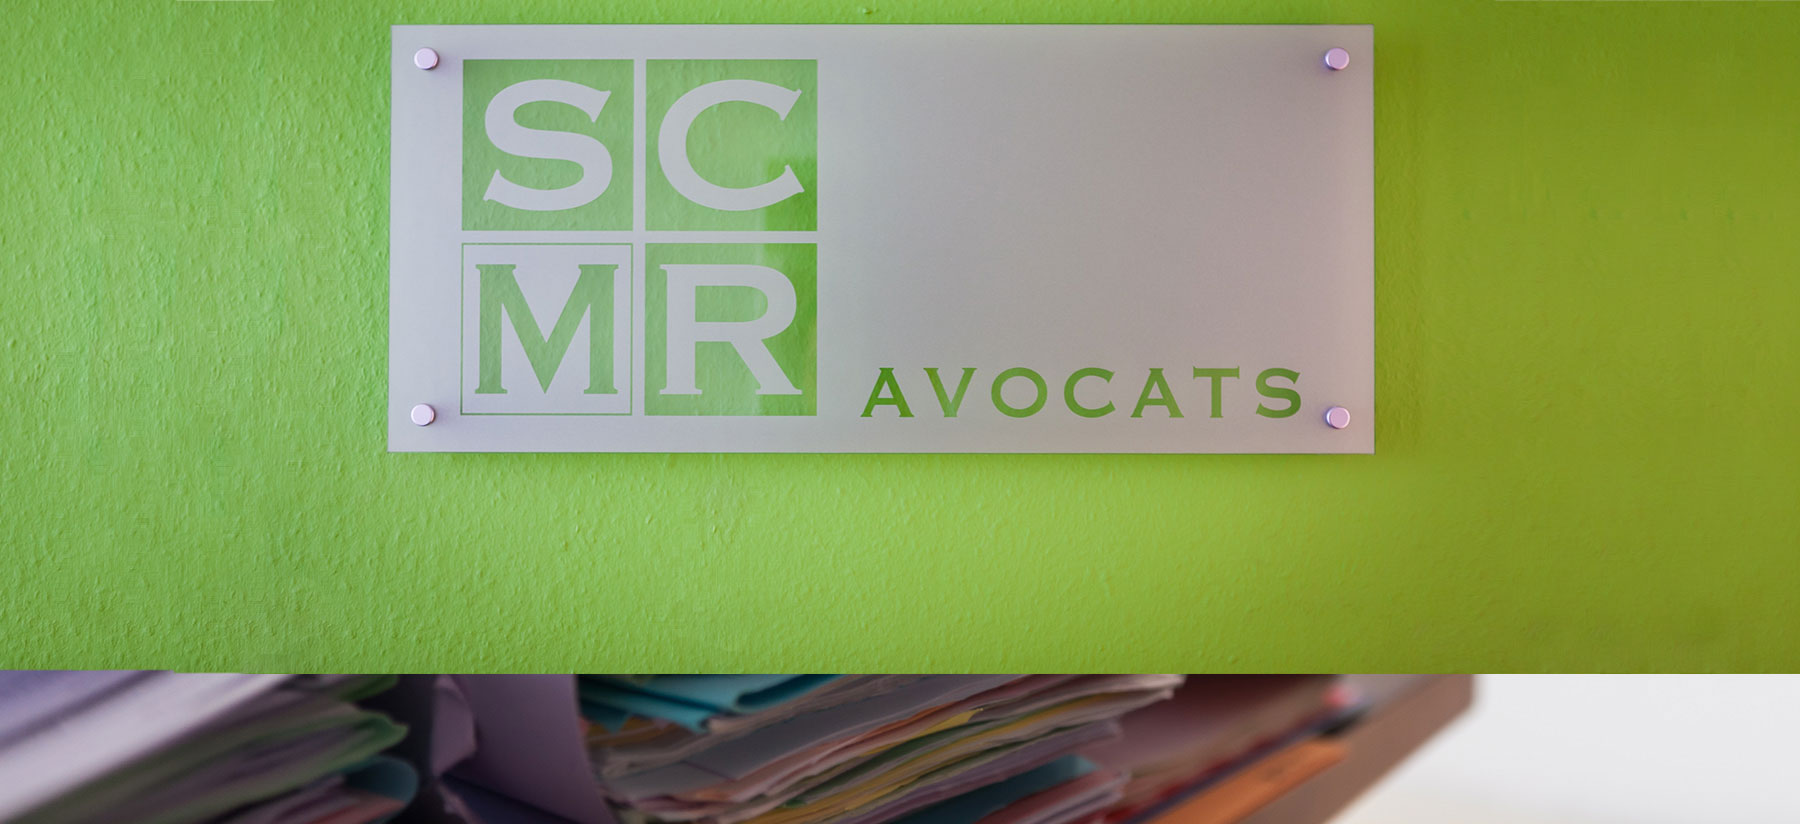 SCRM - avocats france